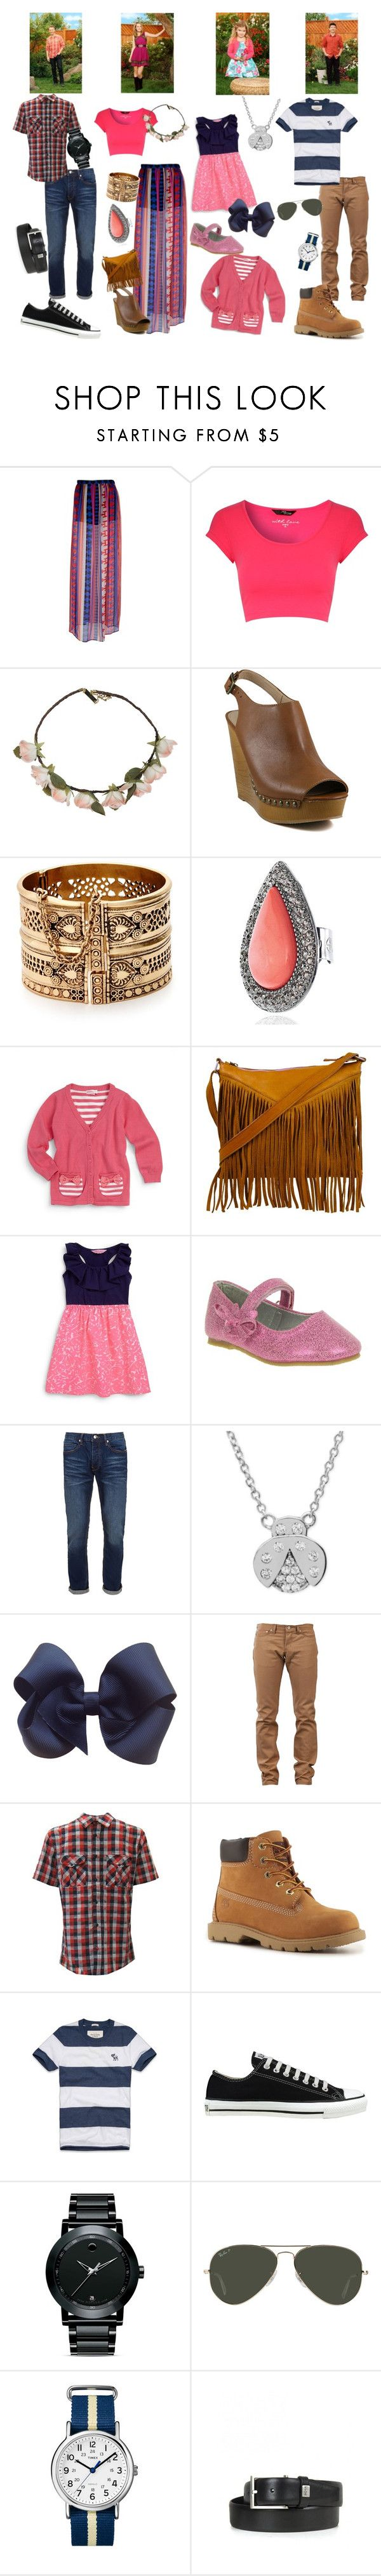 """""""Good Luck Charlie Outfits"""" by daniellenicole ❤ liked on Polyvore featuring MSGM, Jane Norman, Cult Gaia, Steve Madden, Lucky Brand, Samantha Wills, Design History, Cut N' Paste, Lilly Pulitzer and Cutie"""